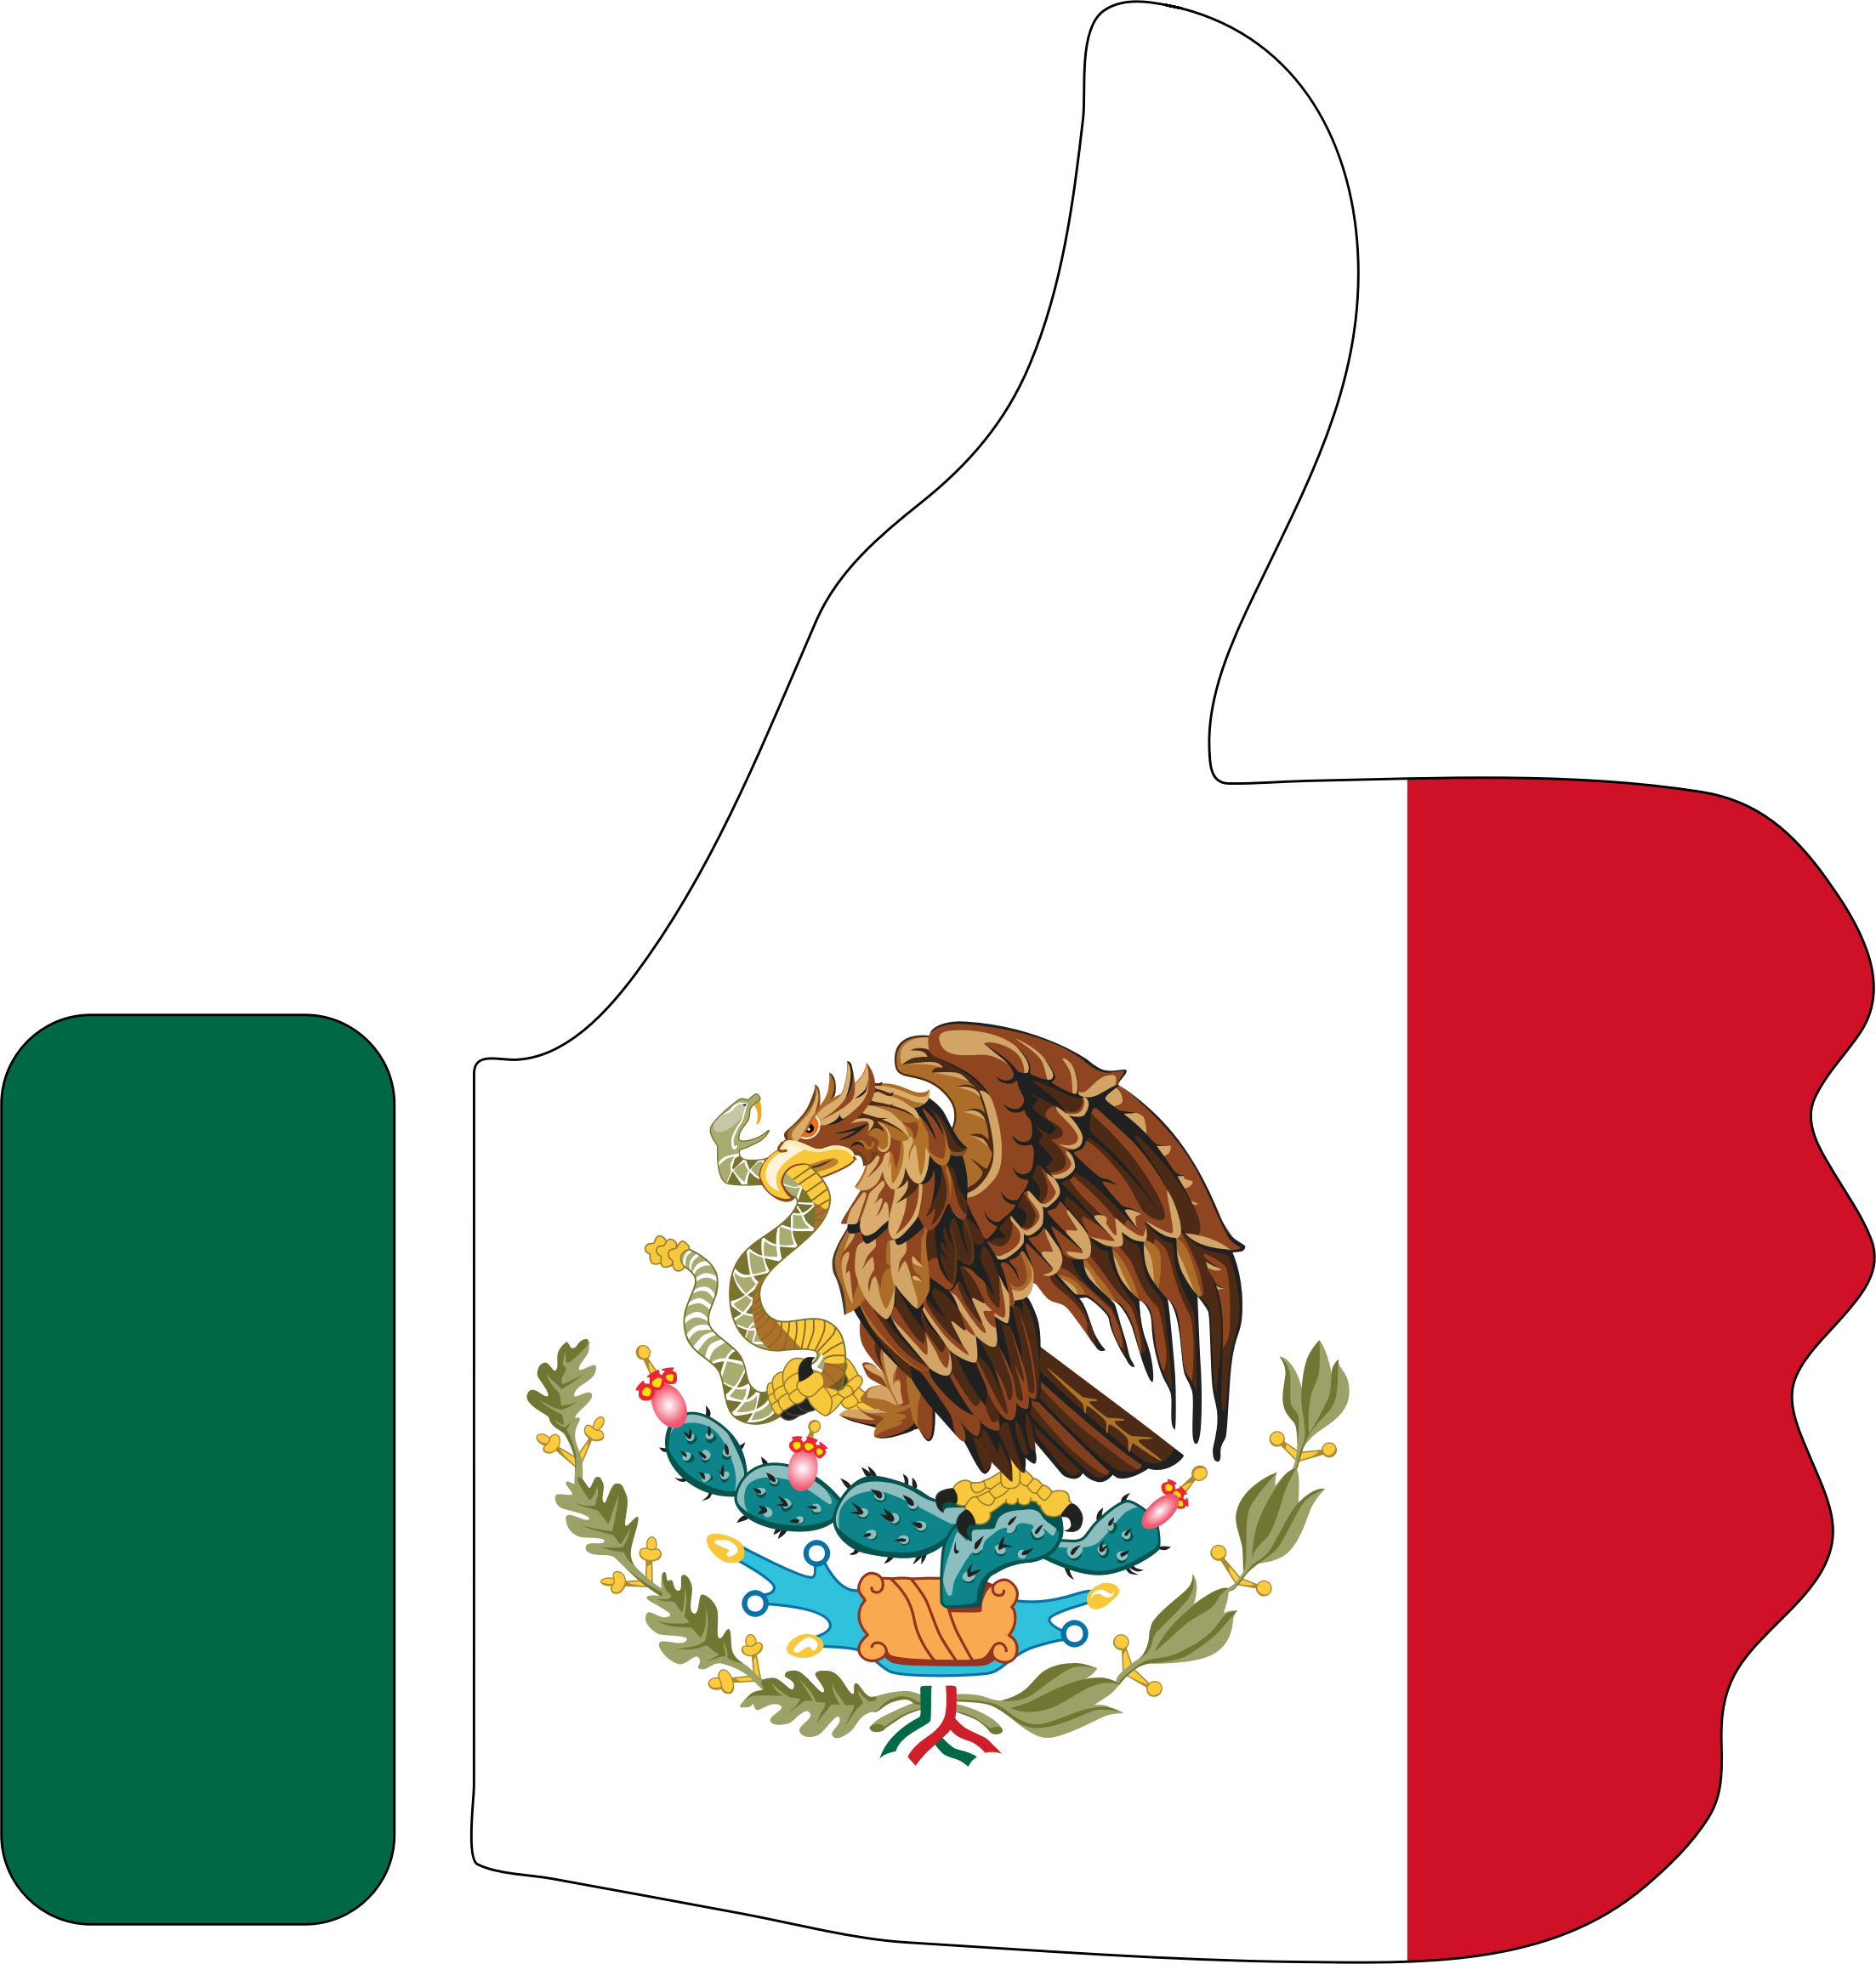 Thumbs up for Mexico